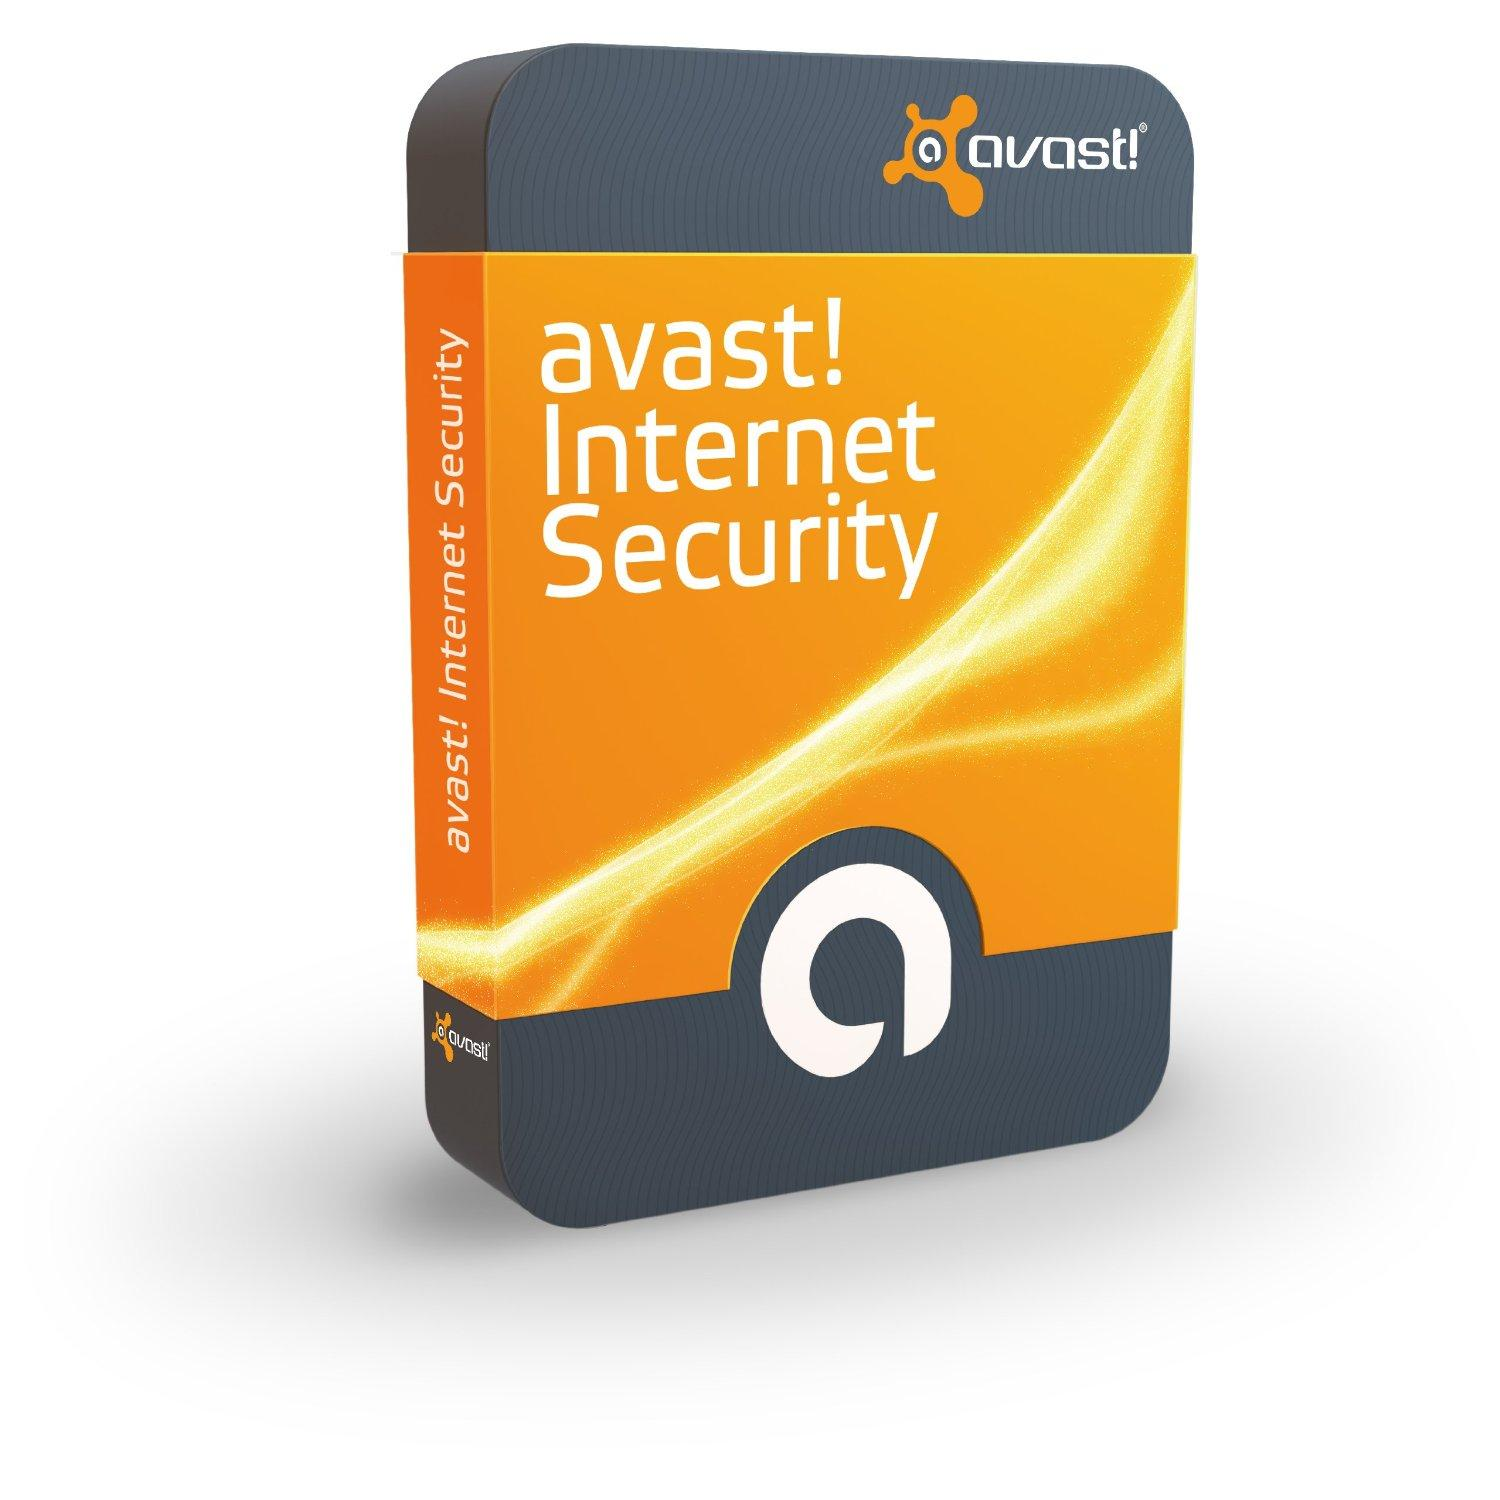 pro crack avast internet security 6 0 1000 crack